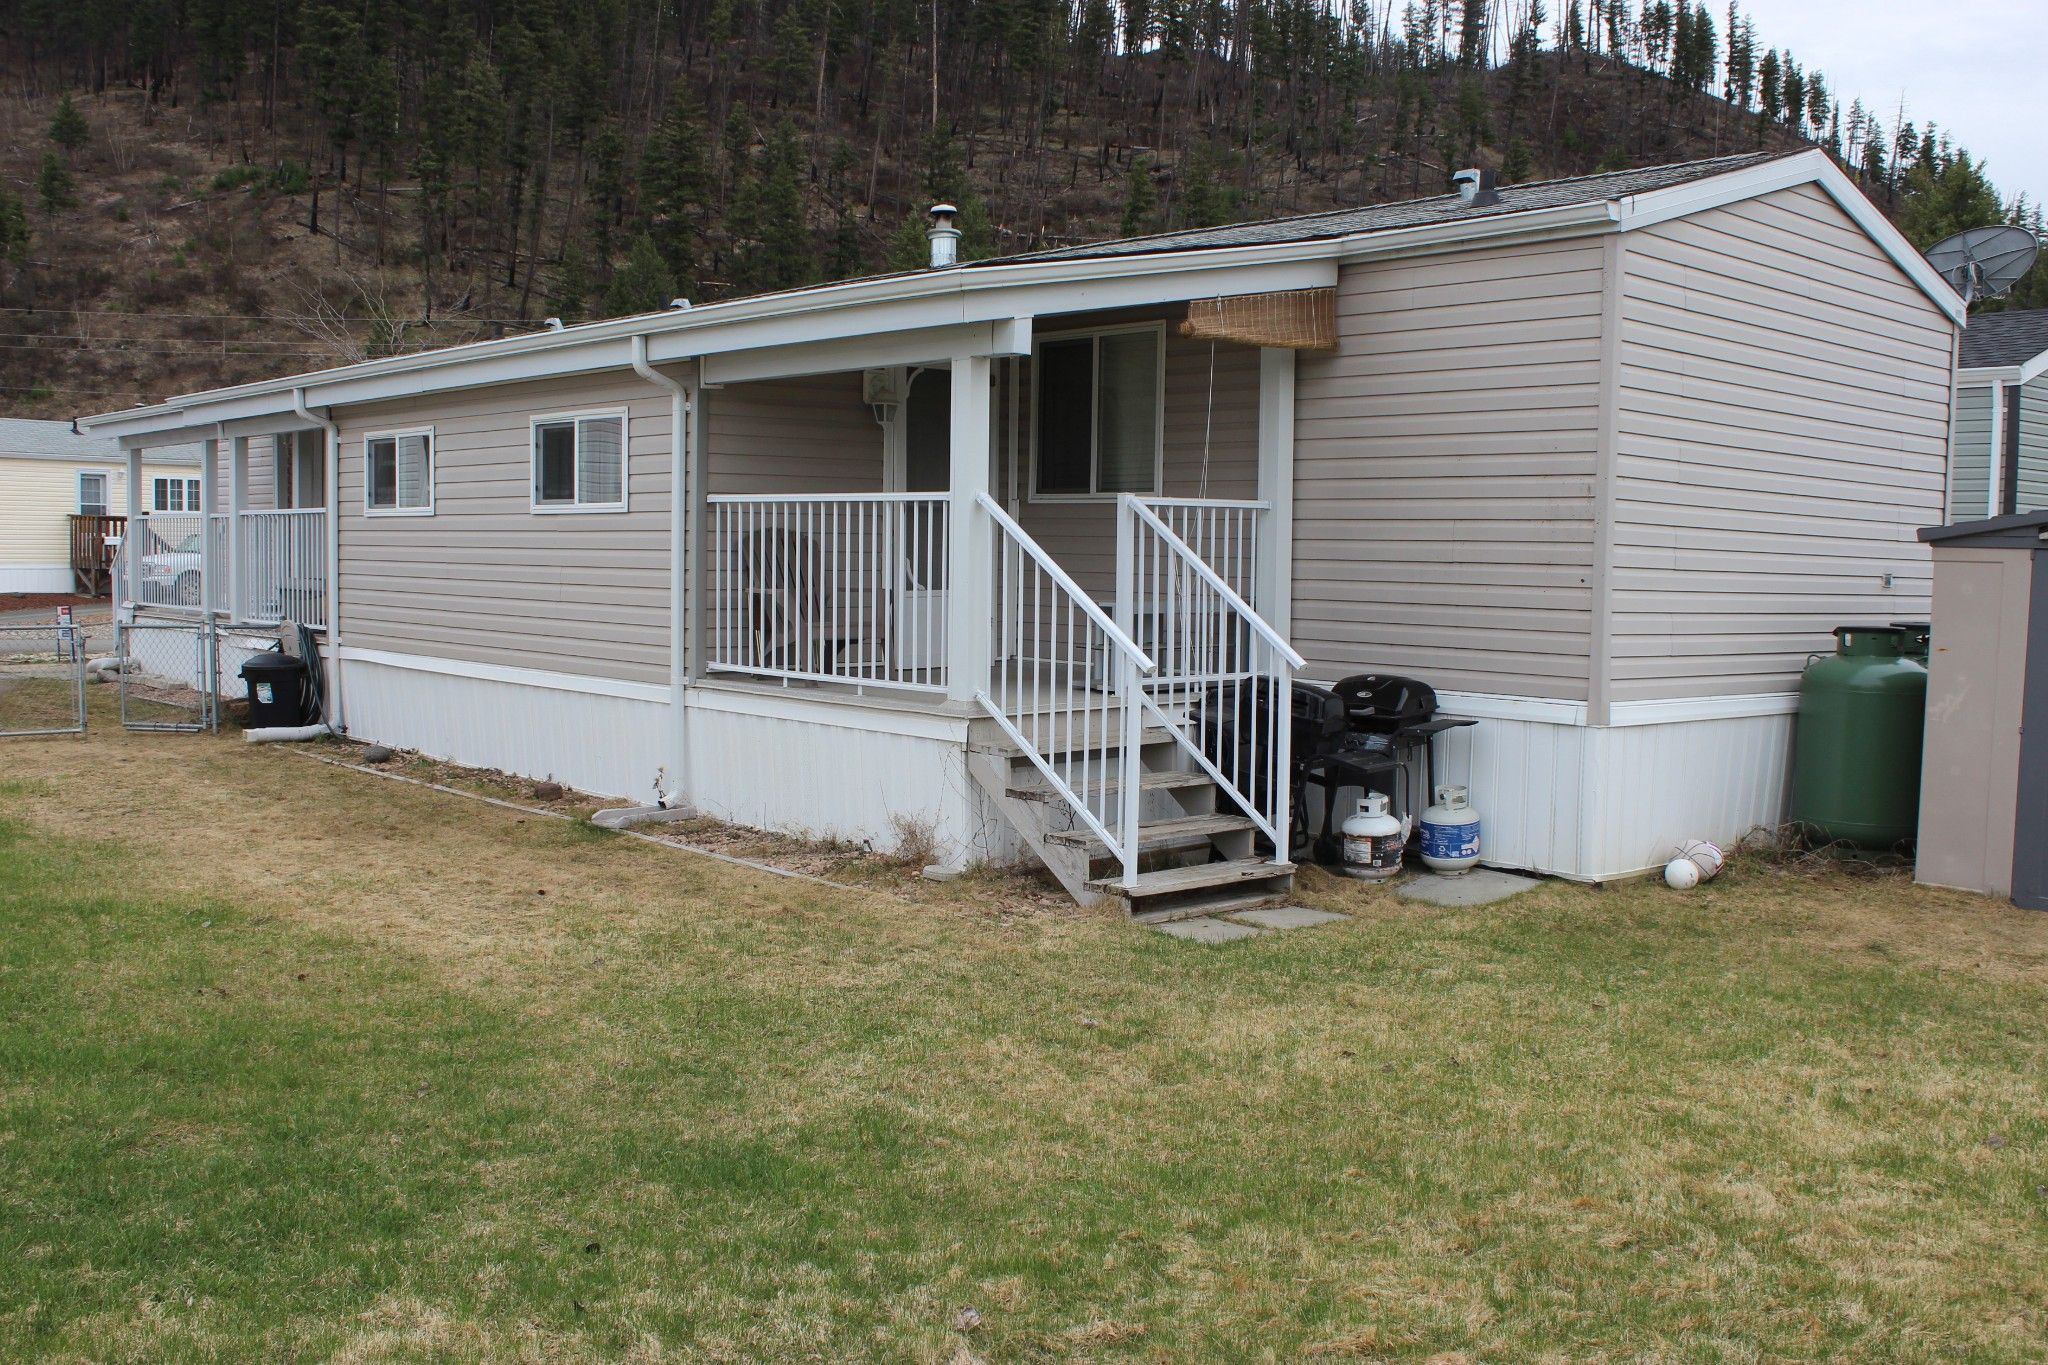 Photo 14: Photos: 31 4510 Power Road: Barriere Manufactured Home for sale (Kamloops)  : MLS®# 156187